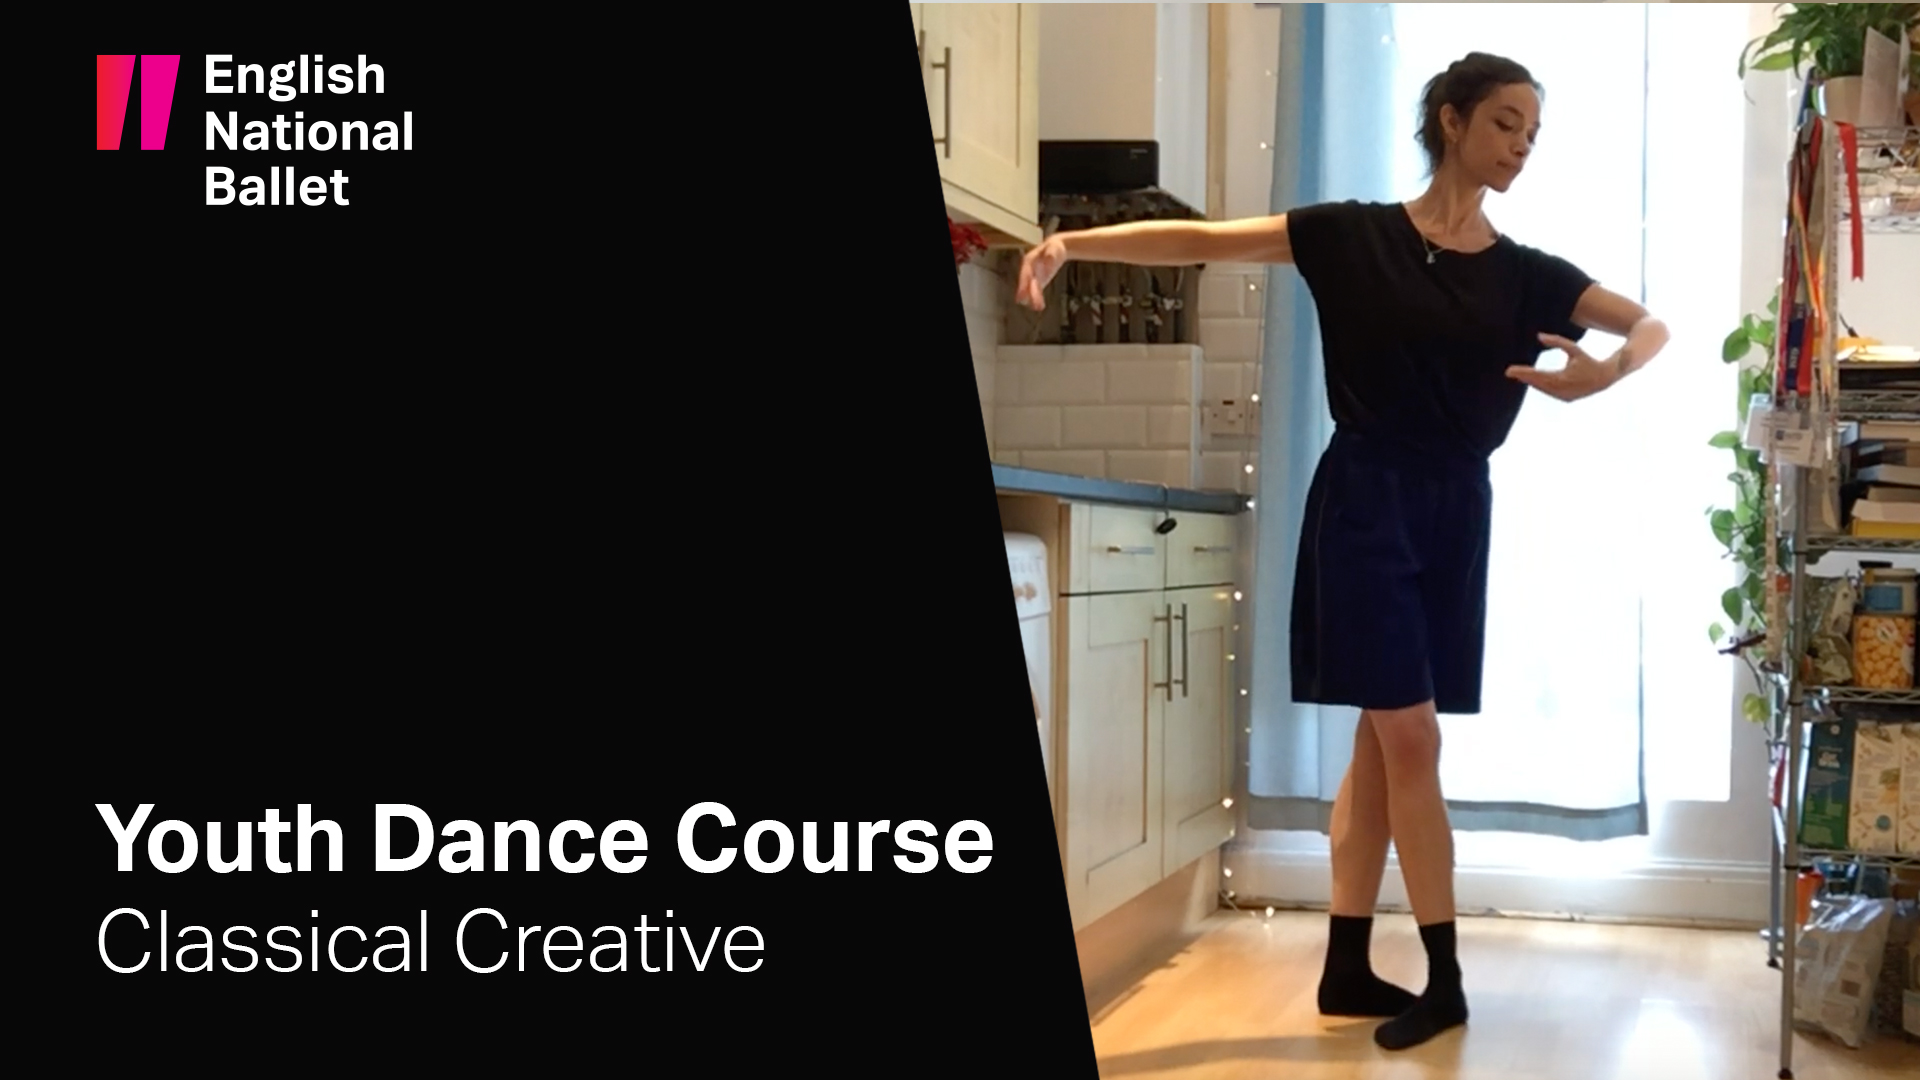 Youth Dance Course: Classical Creative with Louise Bennett | English National Ballet